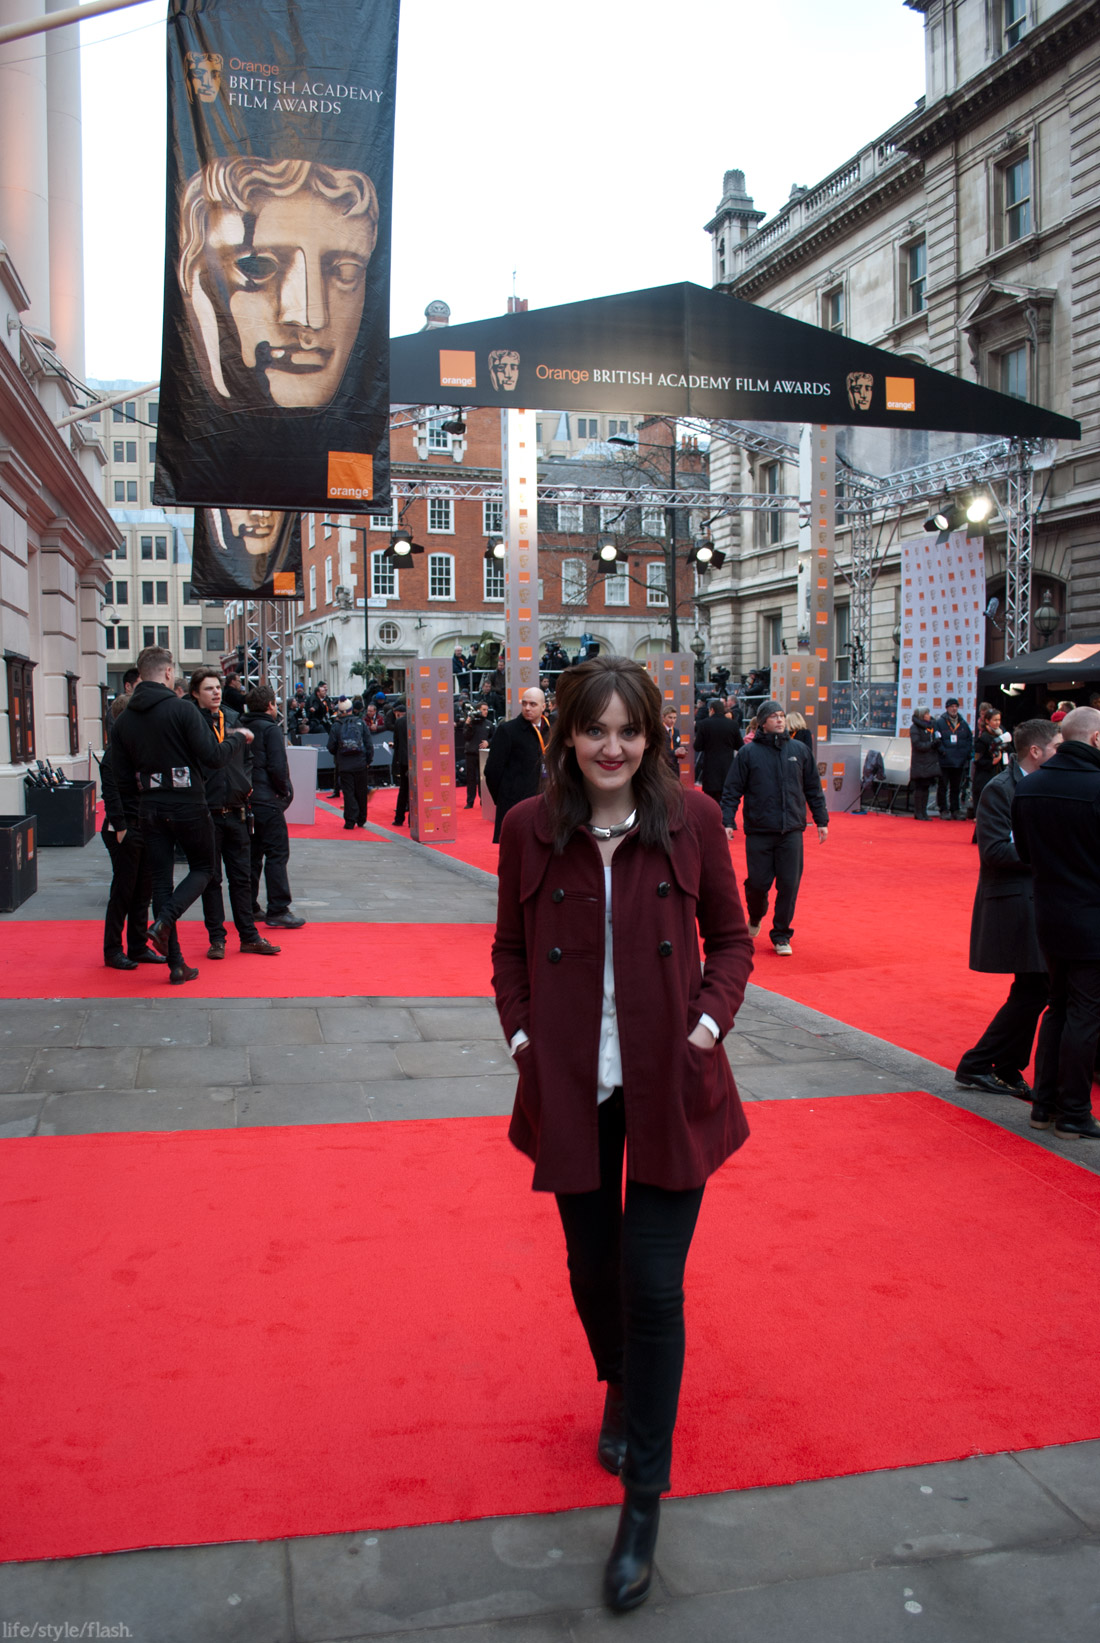 BAFTA awards 2012 - me on the red carpet!